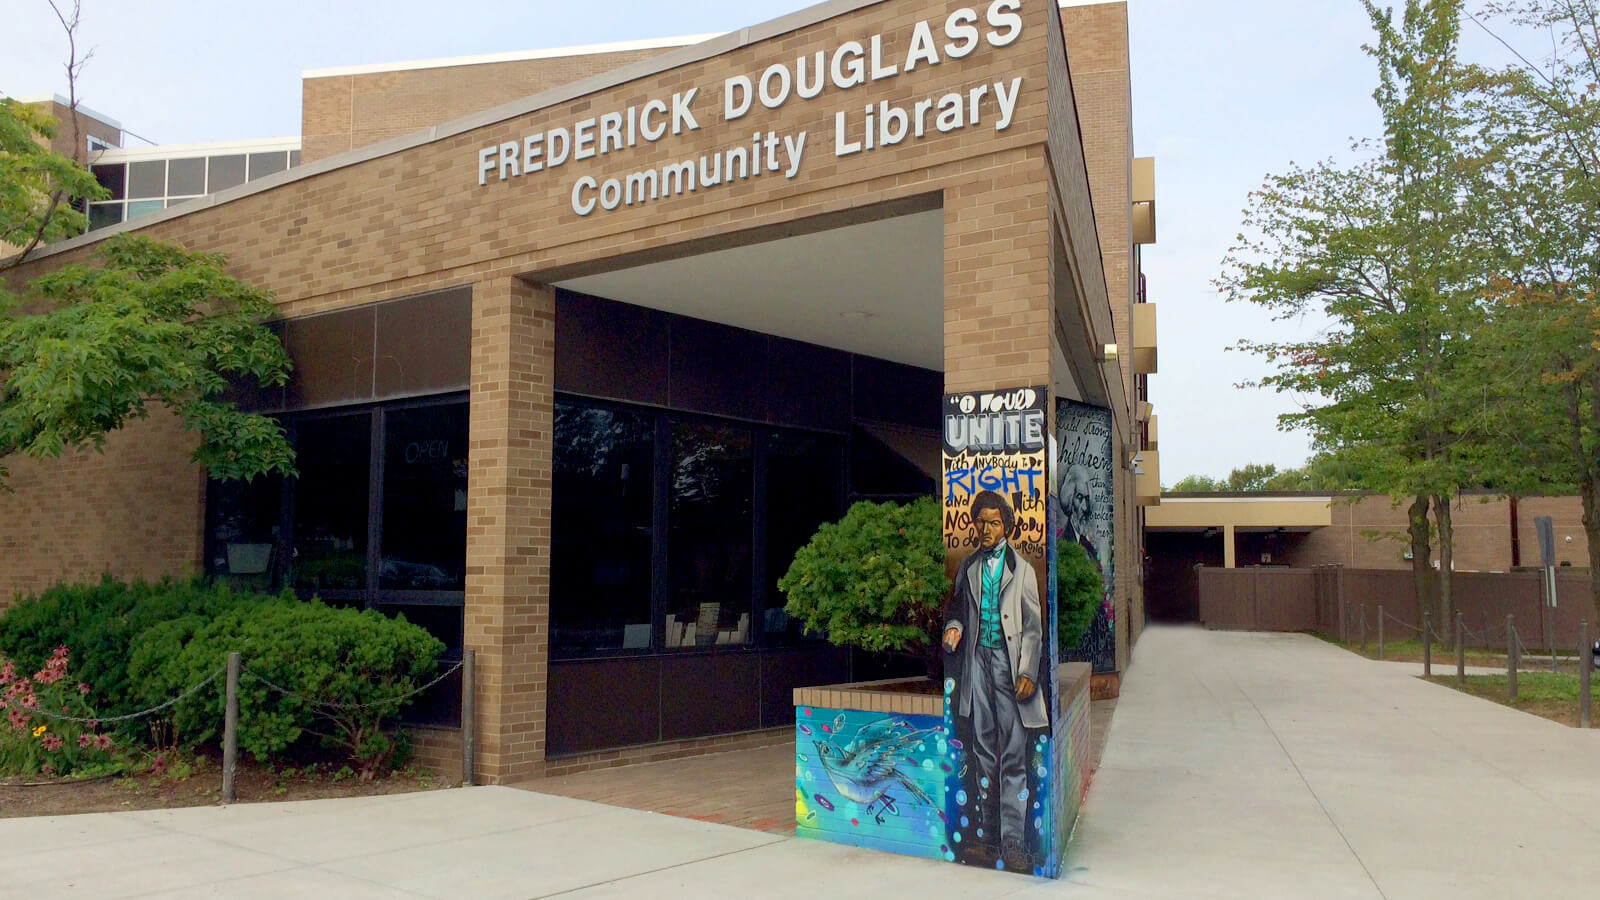 Frederick Douglass Community Library